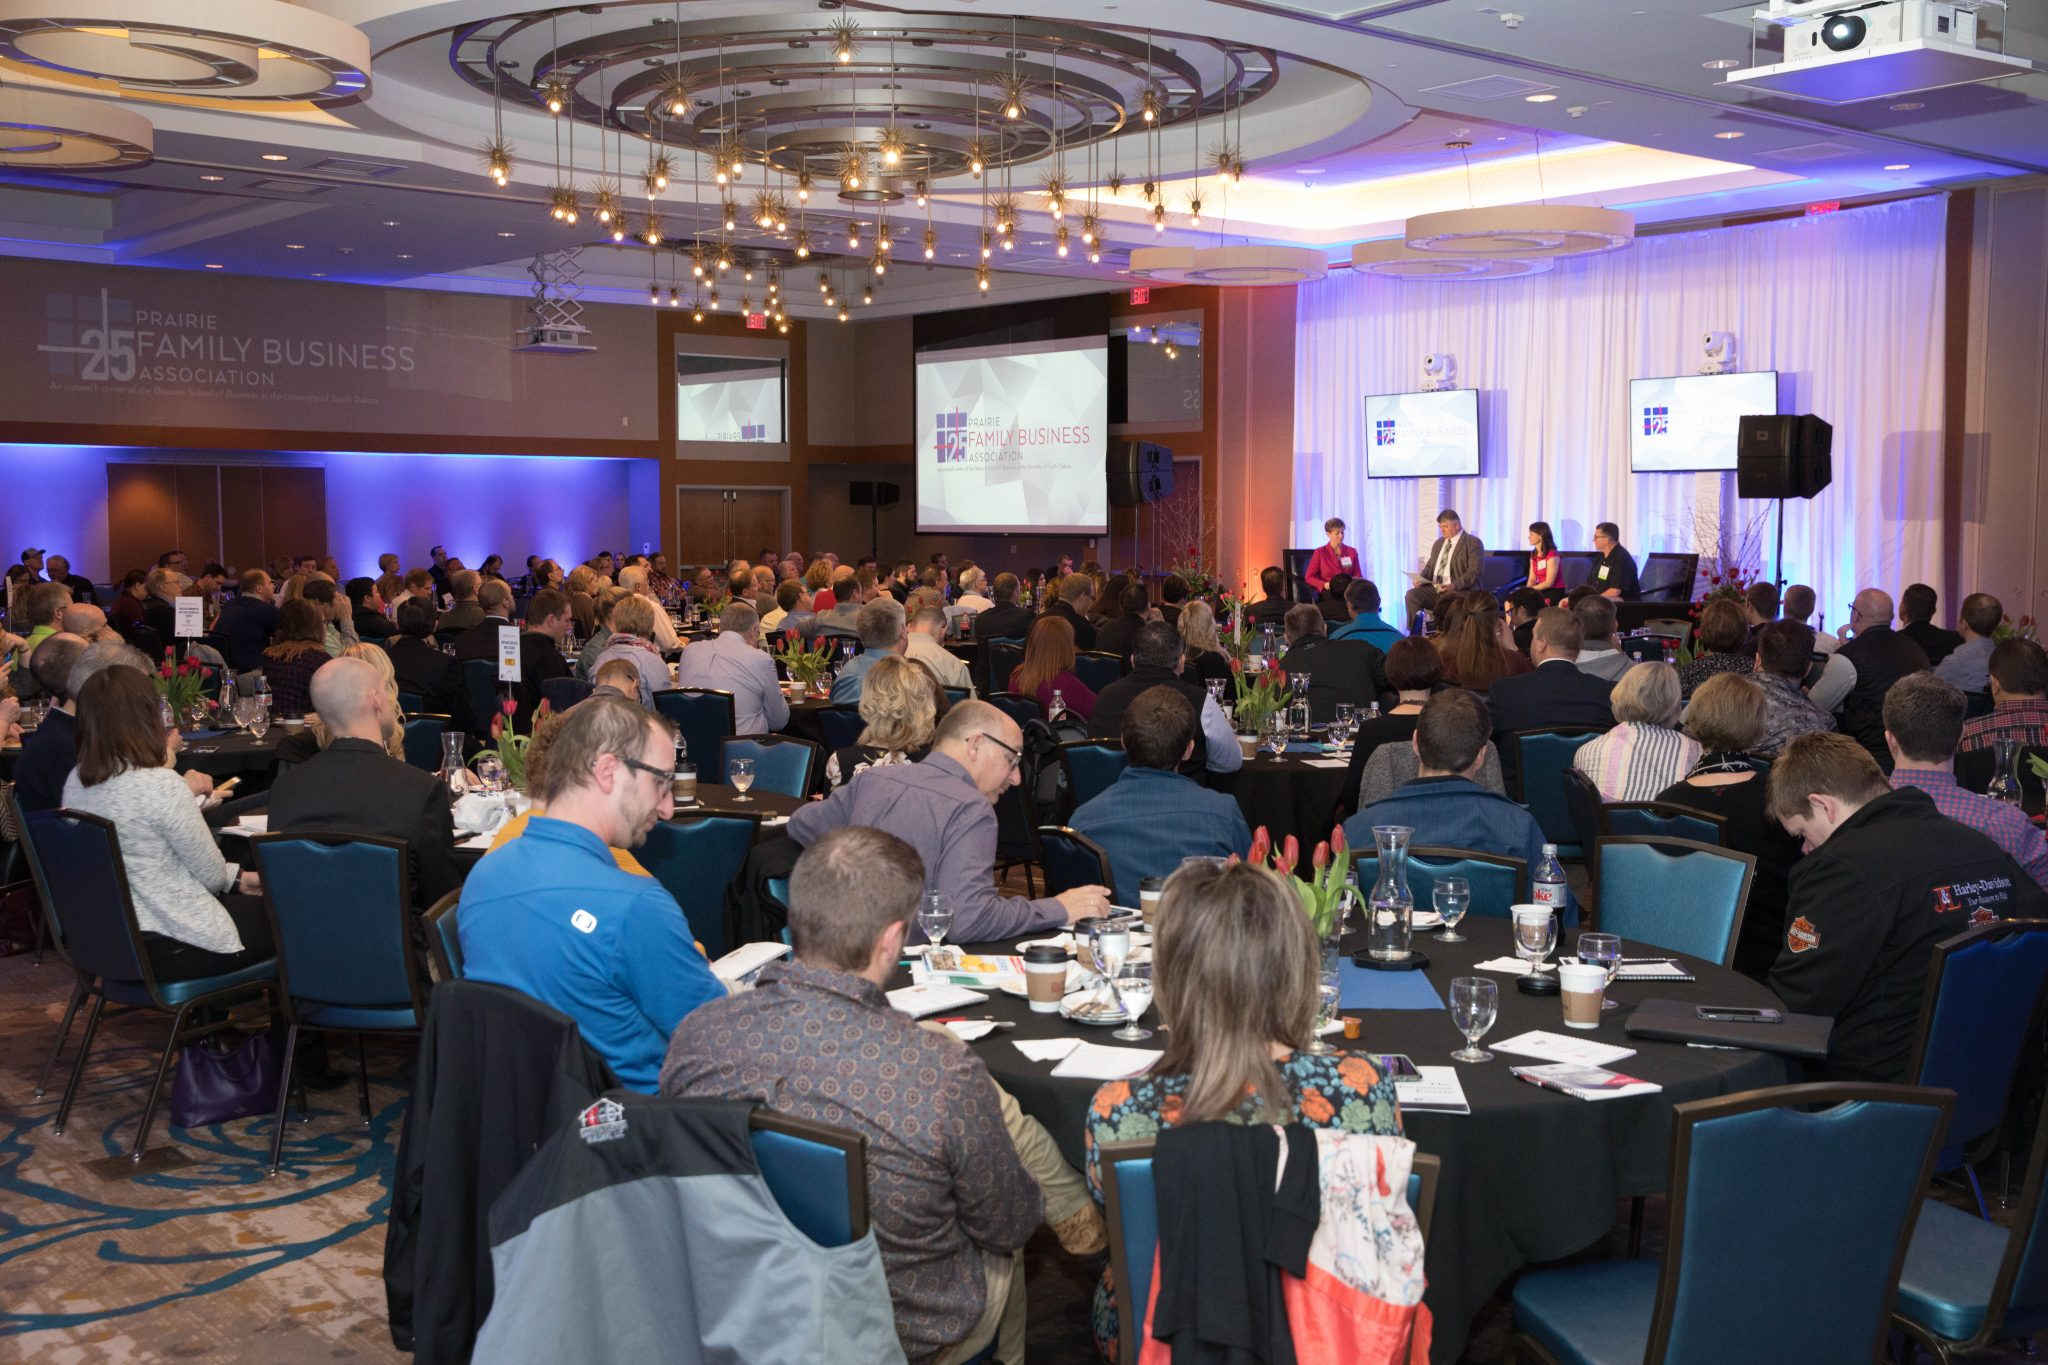 25th Annual Family Business Conference